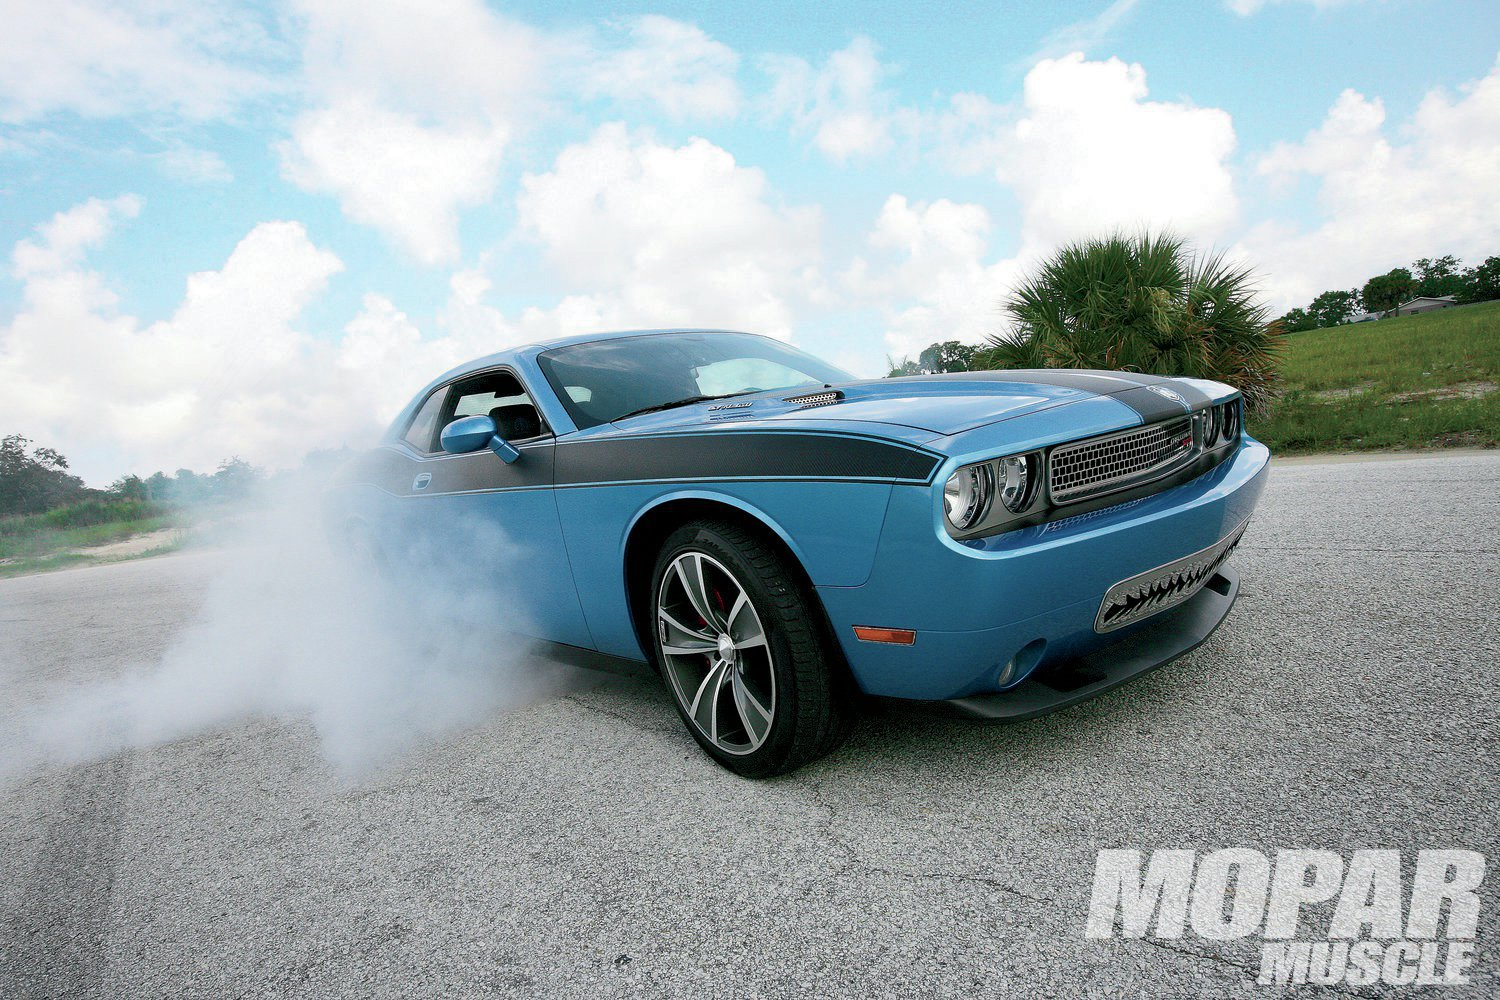 Burnout: 6.1 Hemi + 9 pounds of boost = 560 rwhp, giving plenty of Pirelli-flavored tire smoke.